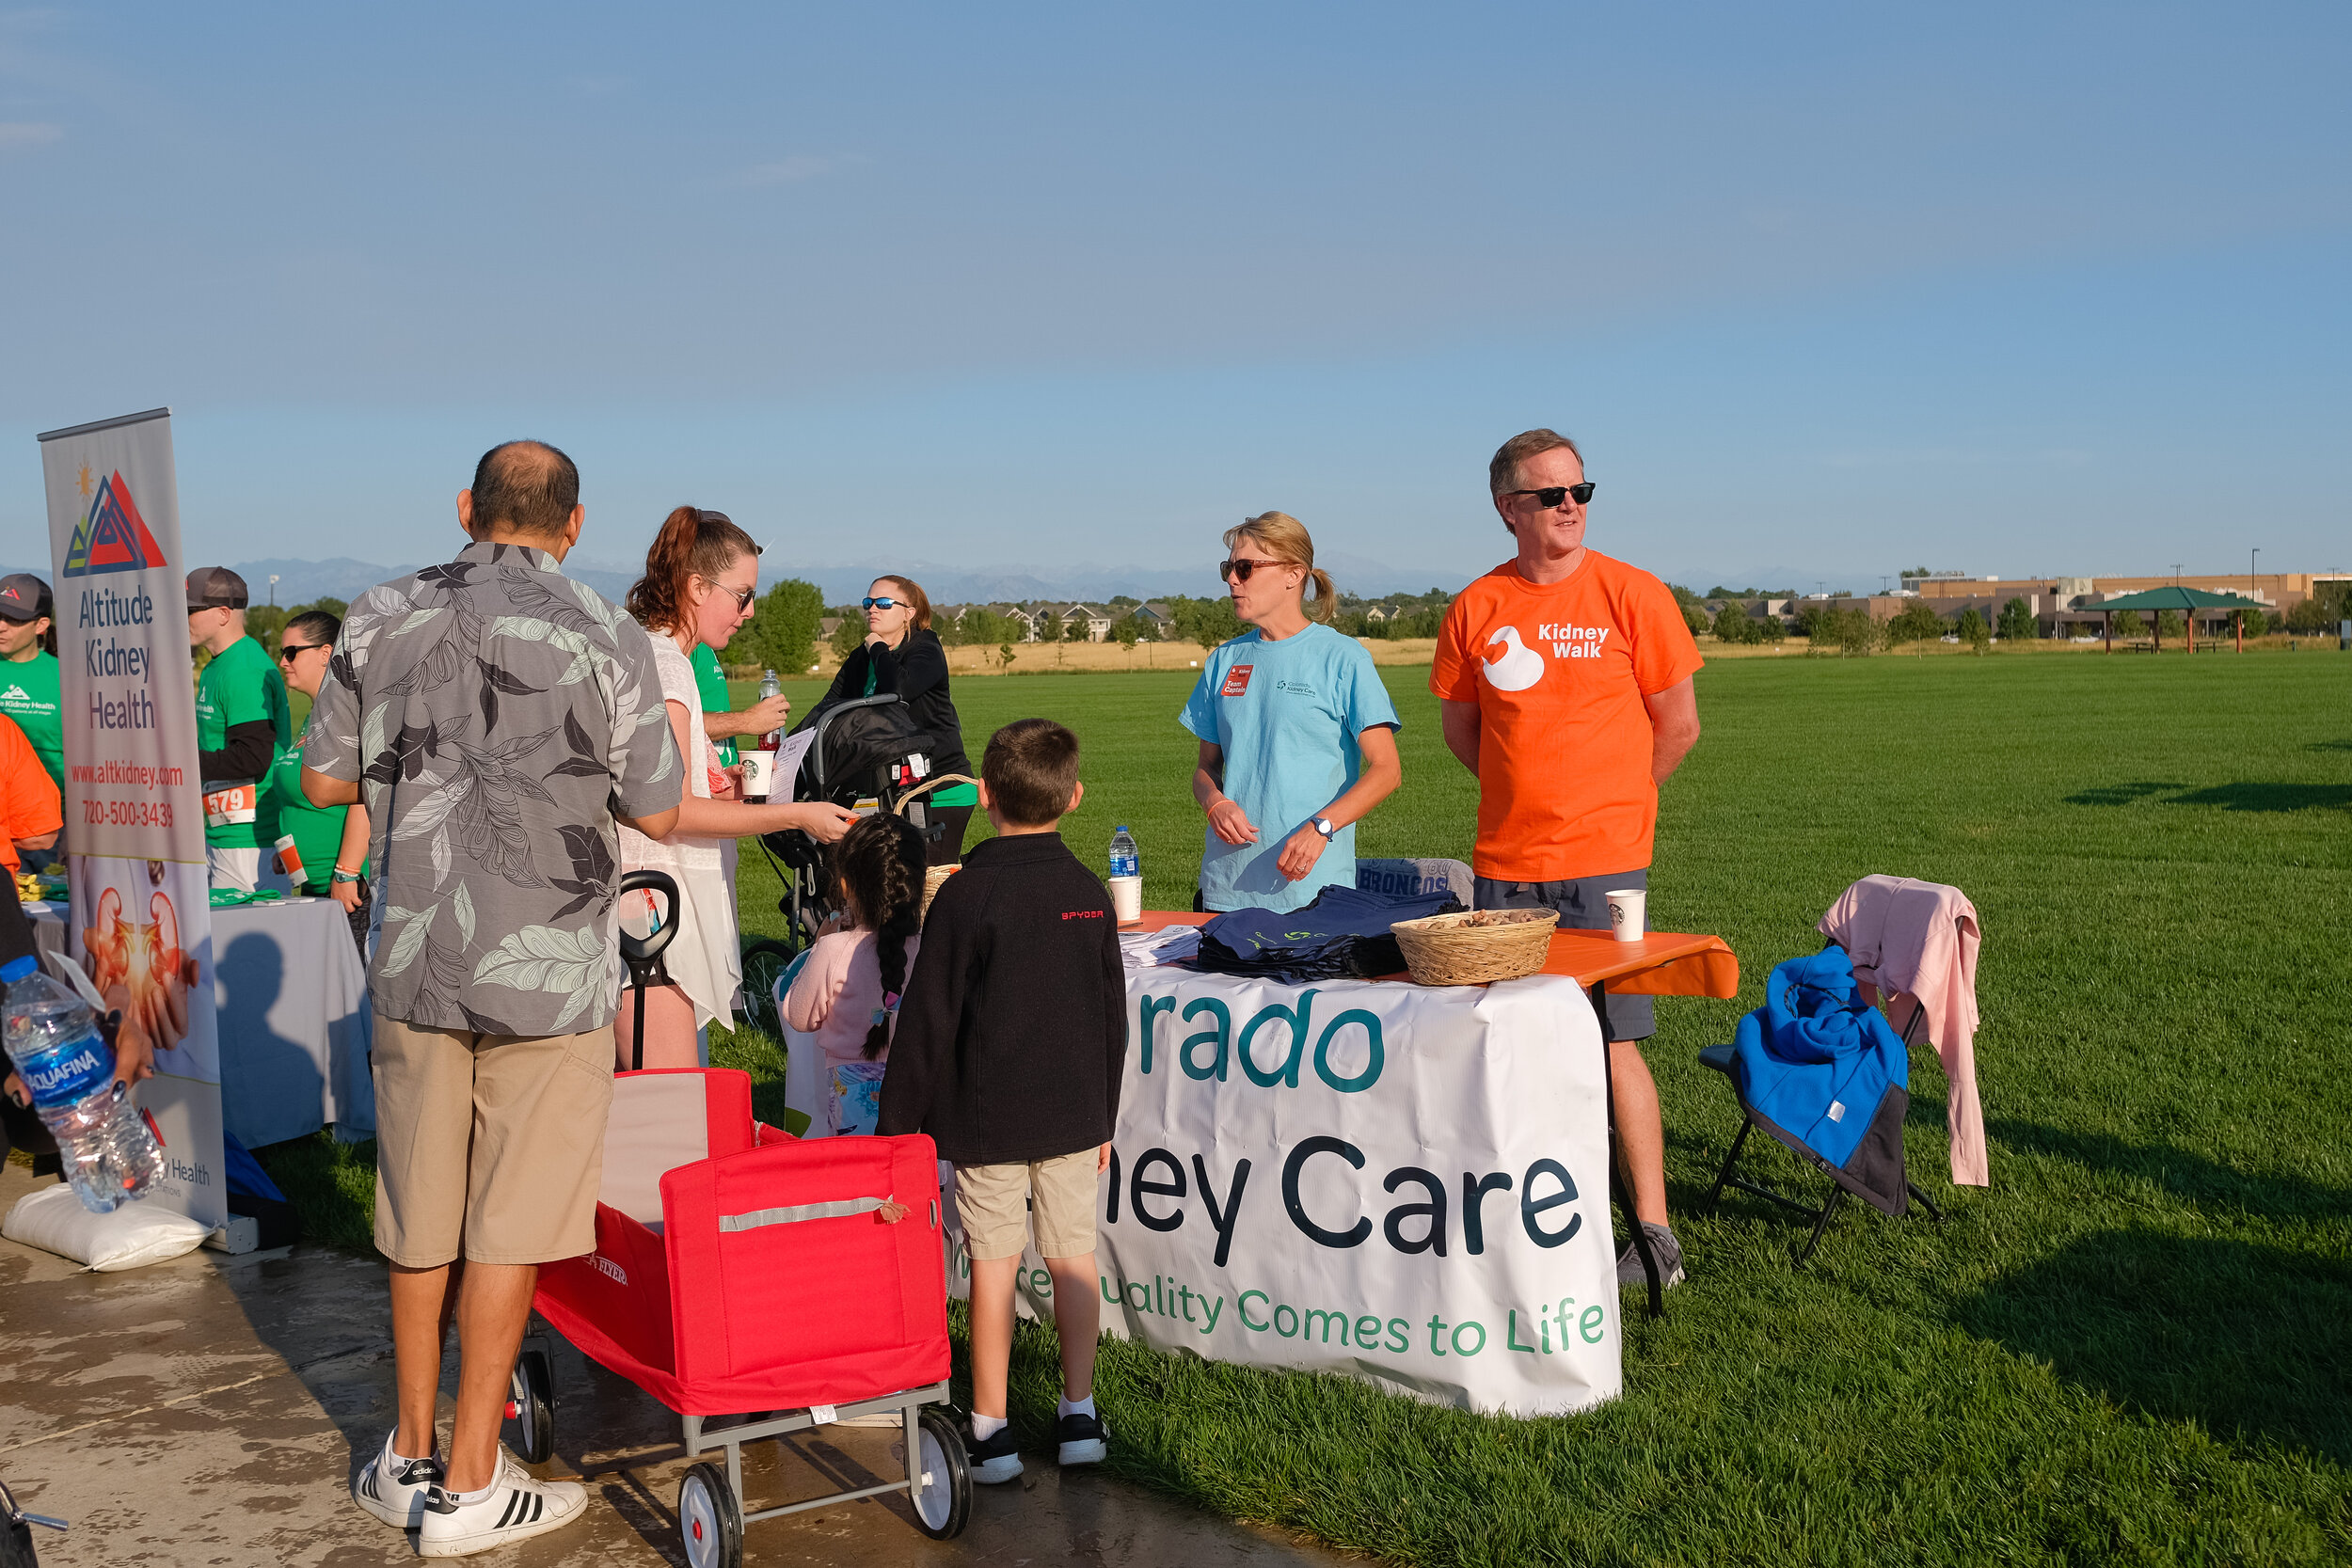 Denver Kidney Walk-34.jpg